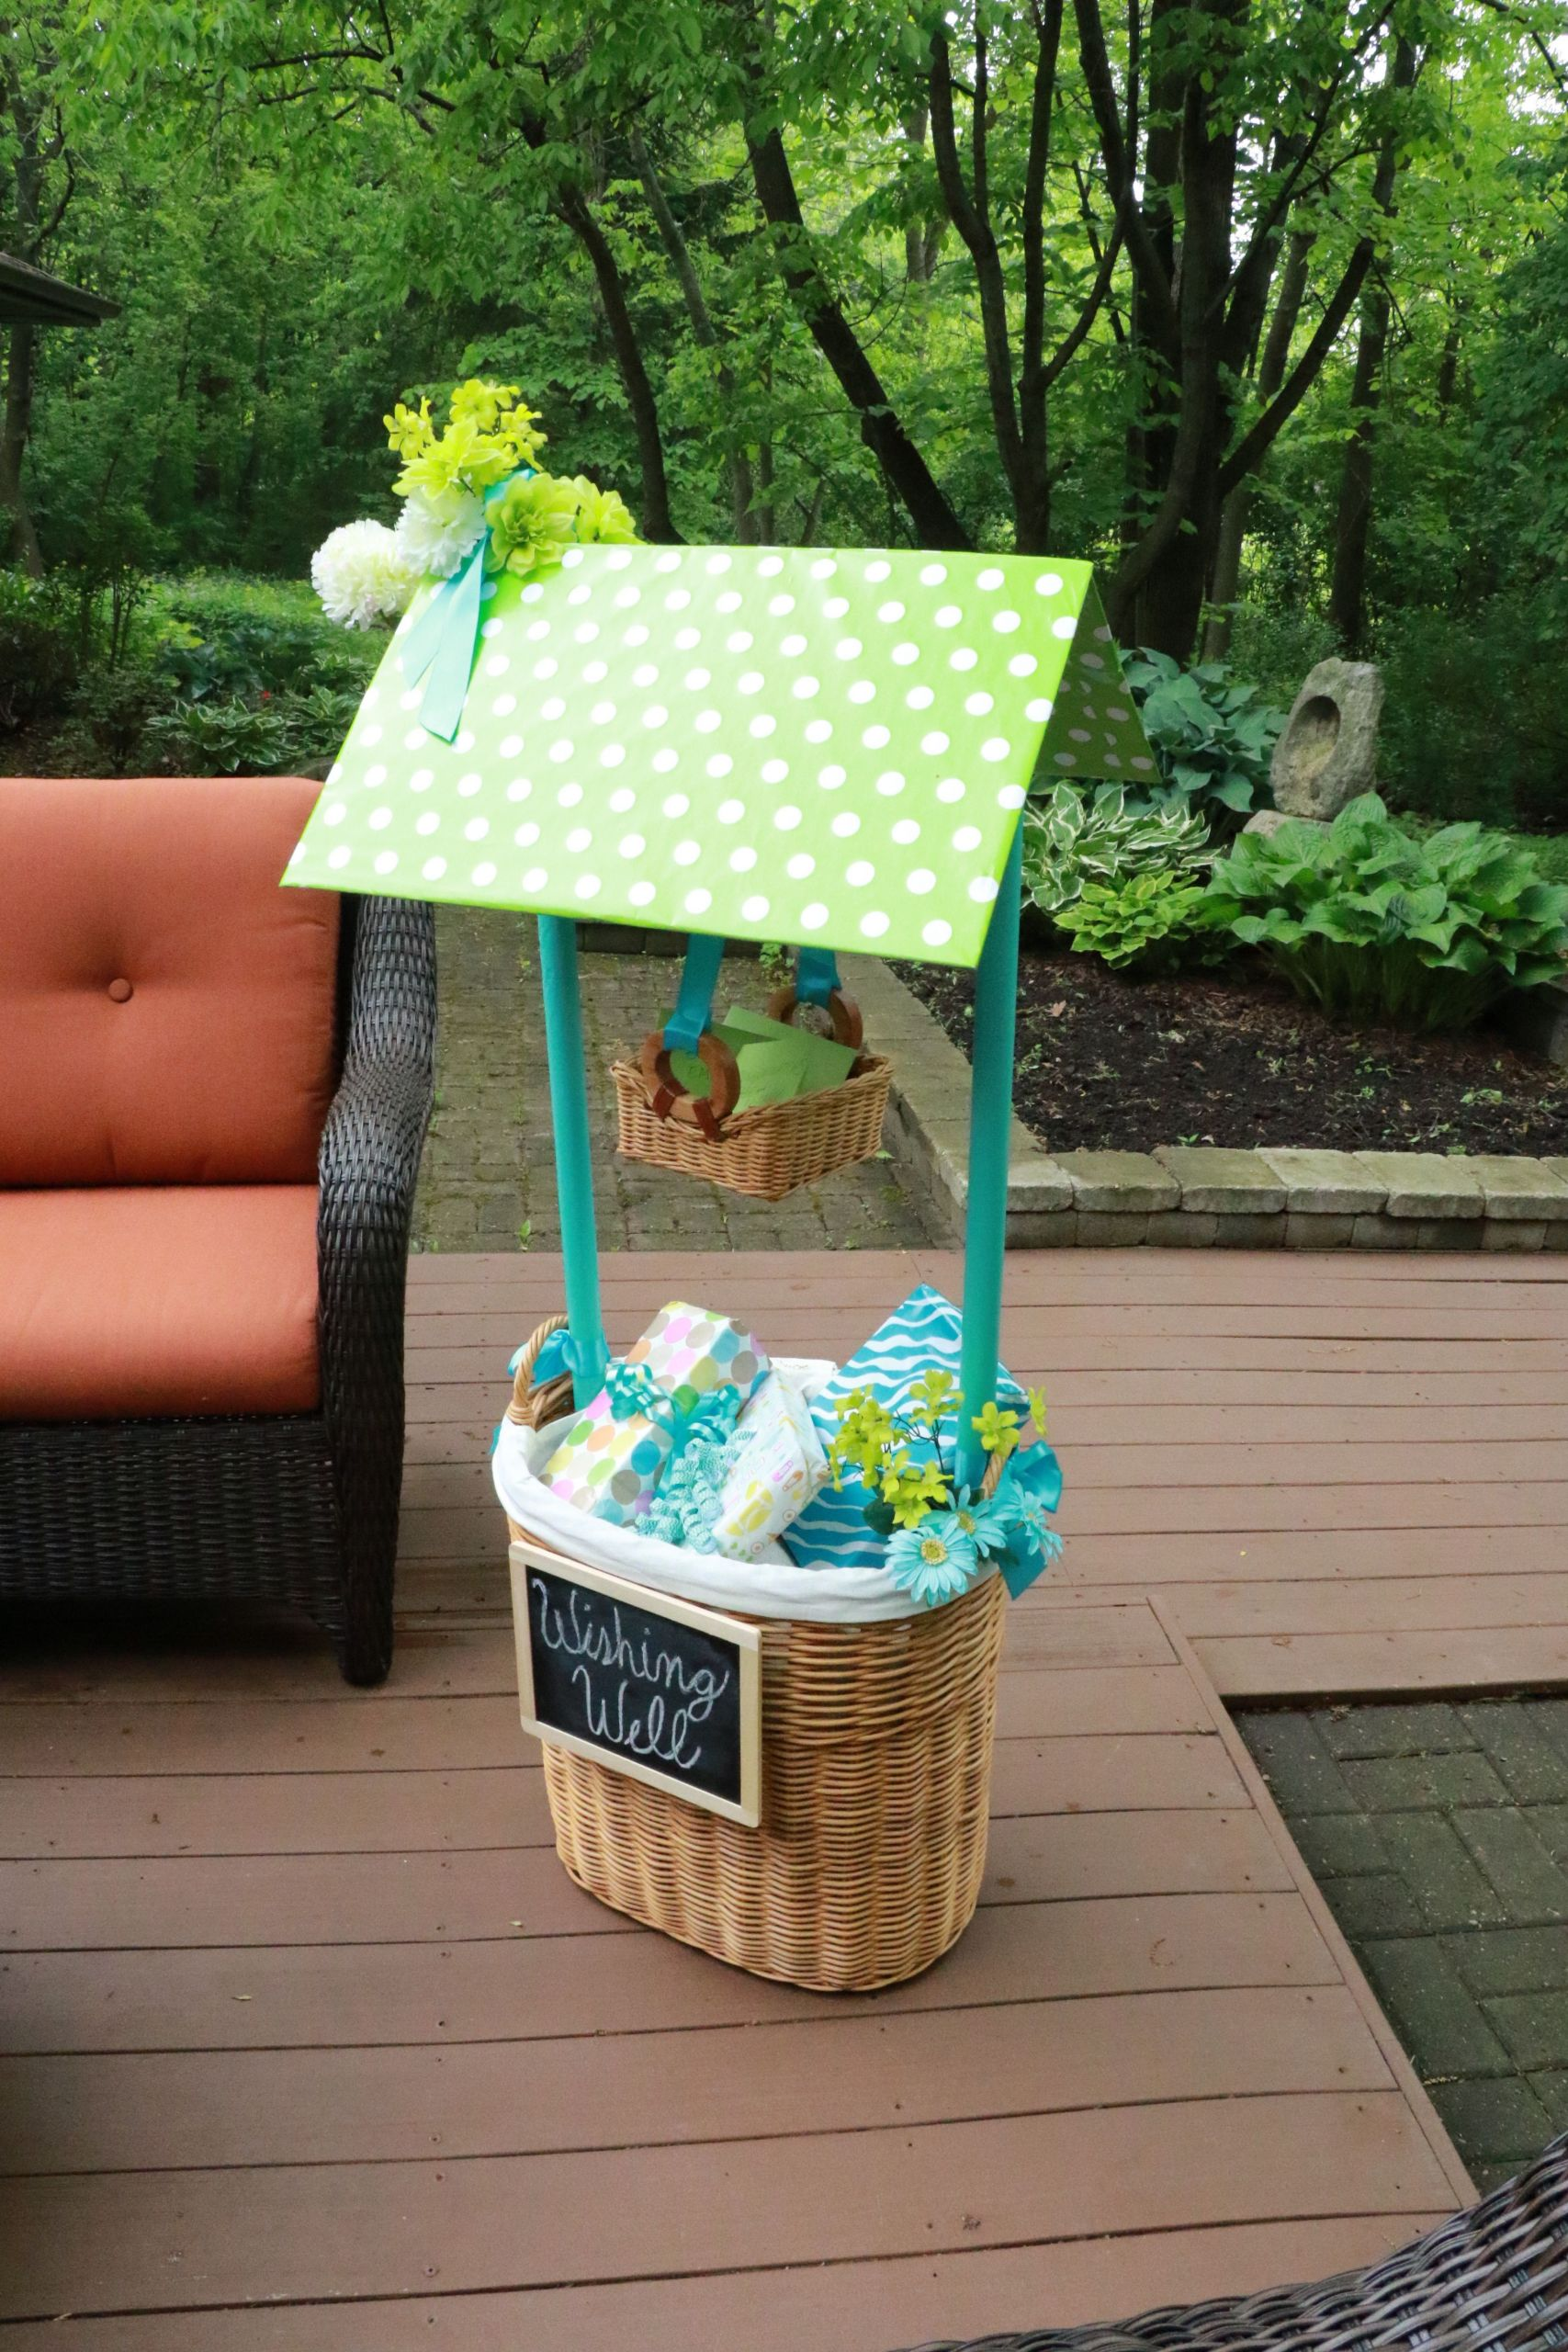 Baby Shower Wishing Well Gift Ideas  How To Make Your Own Beautiful Wishing Well Basket For A